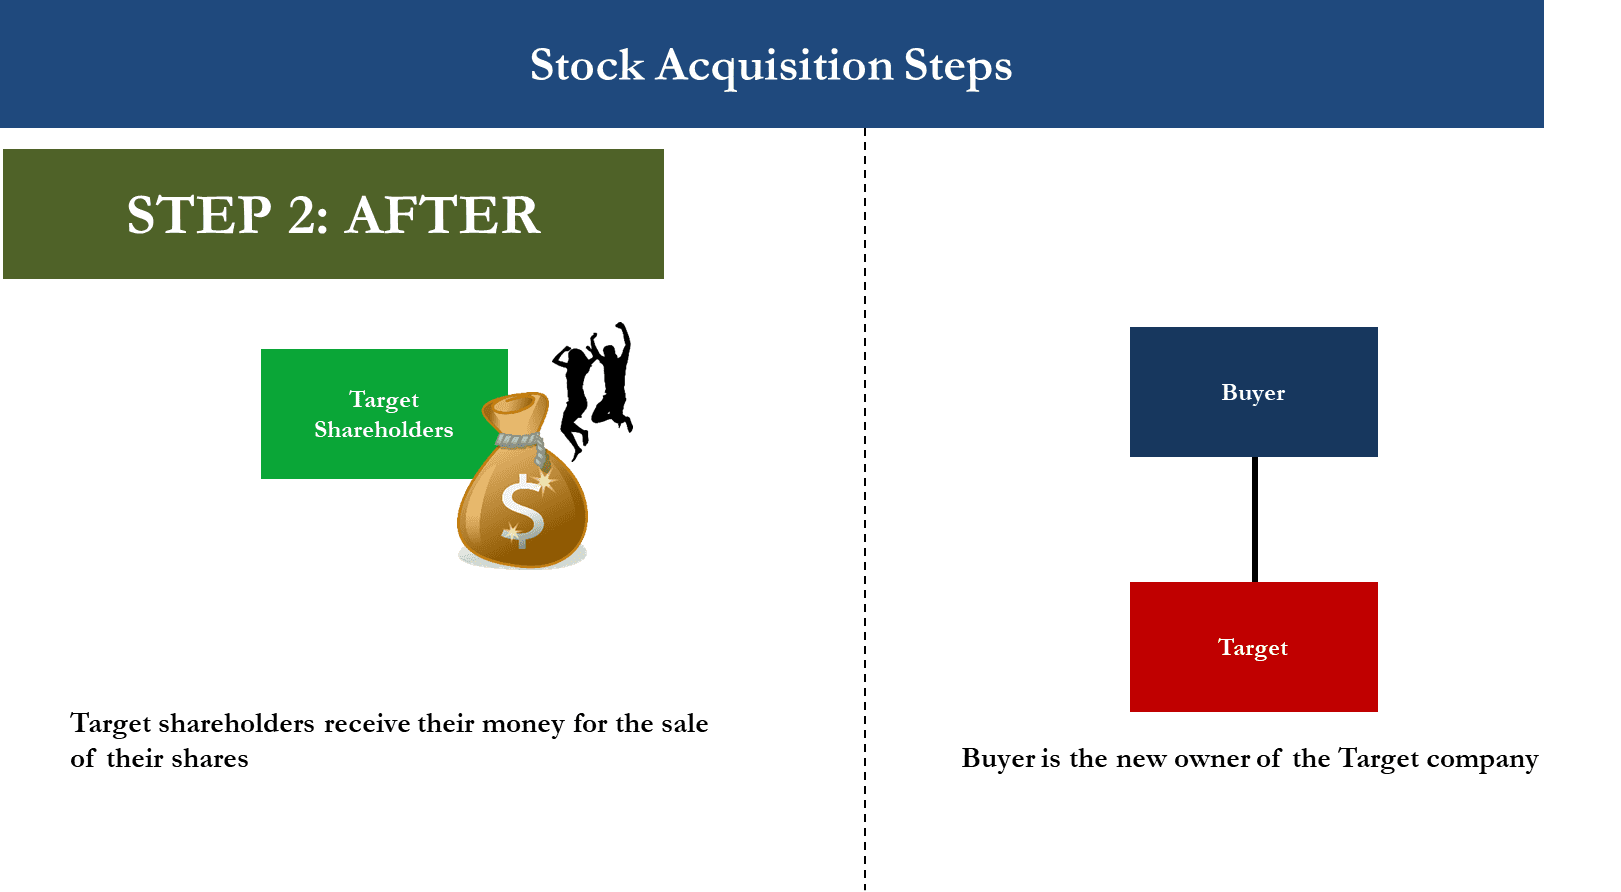 M&A Stock Acquisition Diagram showing structure after transaction